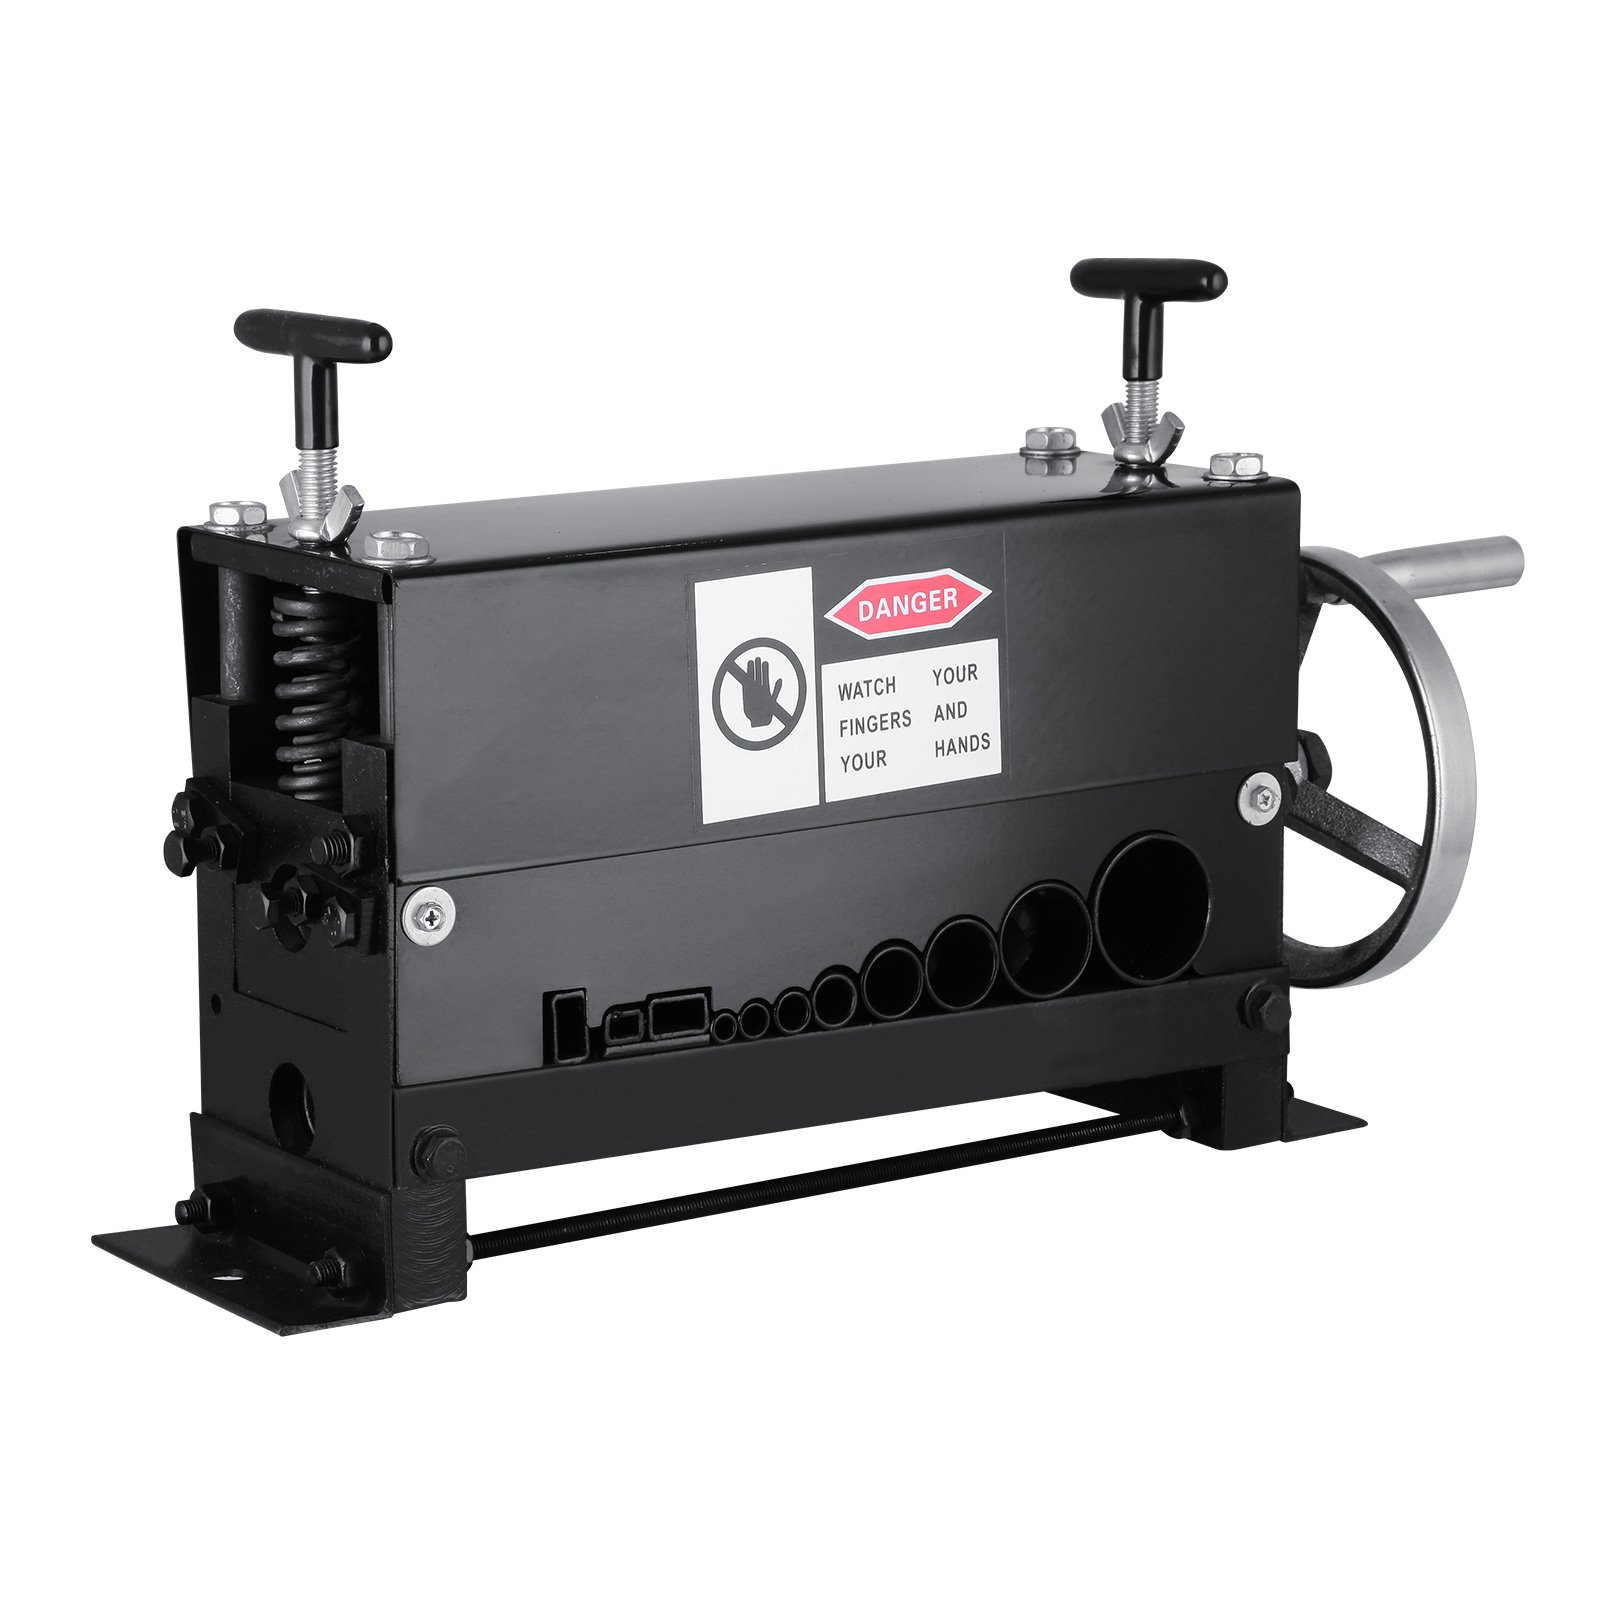 VEVOR Cable Wire Stripping Machine Φ1.5mm~Φ20mm Wire Stripping Machine 10 Channels Wire Stripping Machine Tool Manual Hand Cranked Industrial Wire Stripping Recycle (10 Channels)